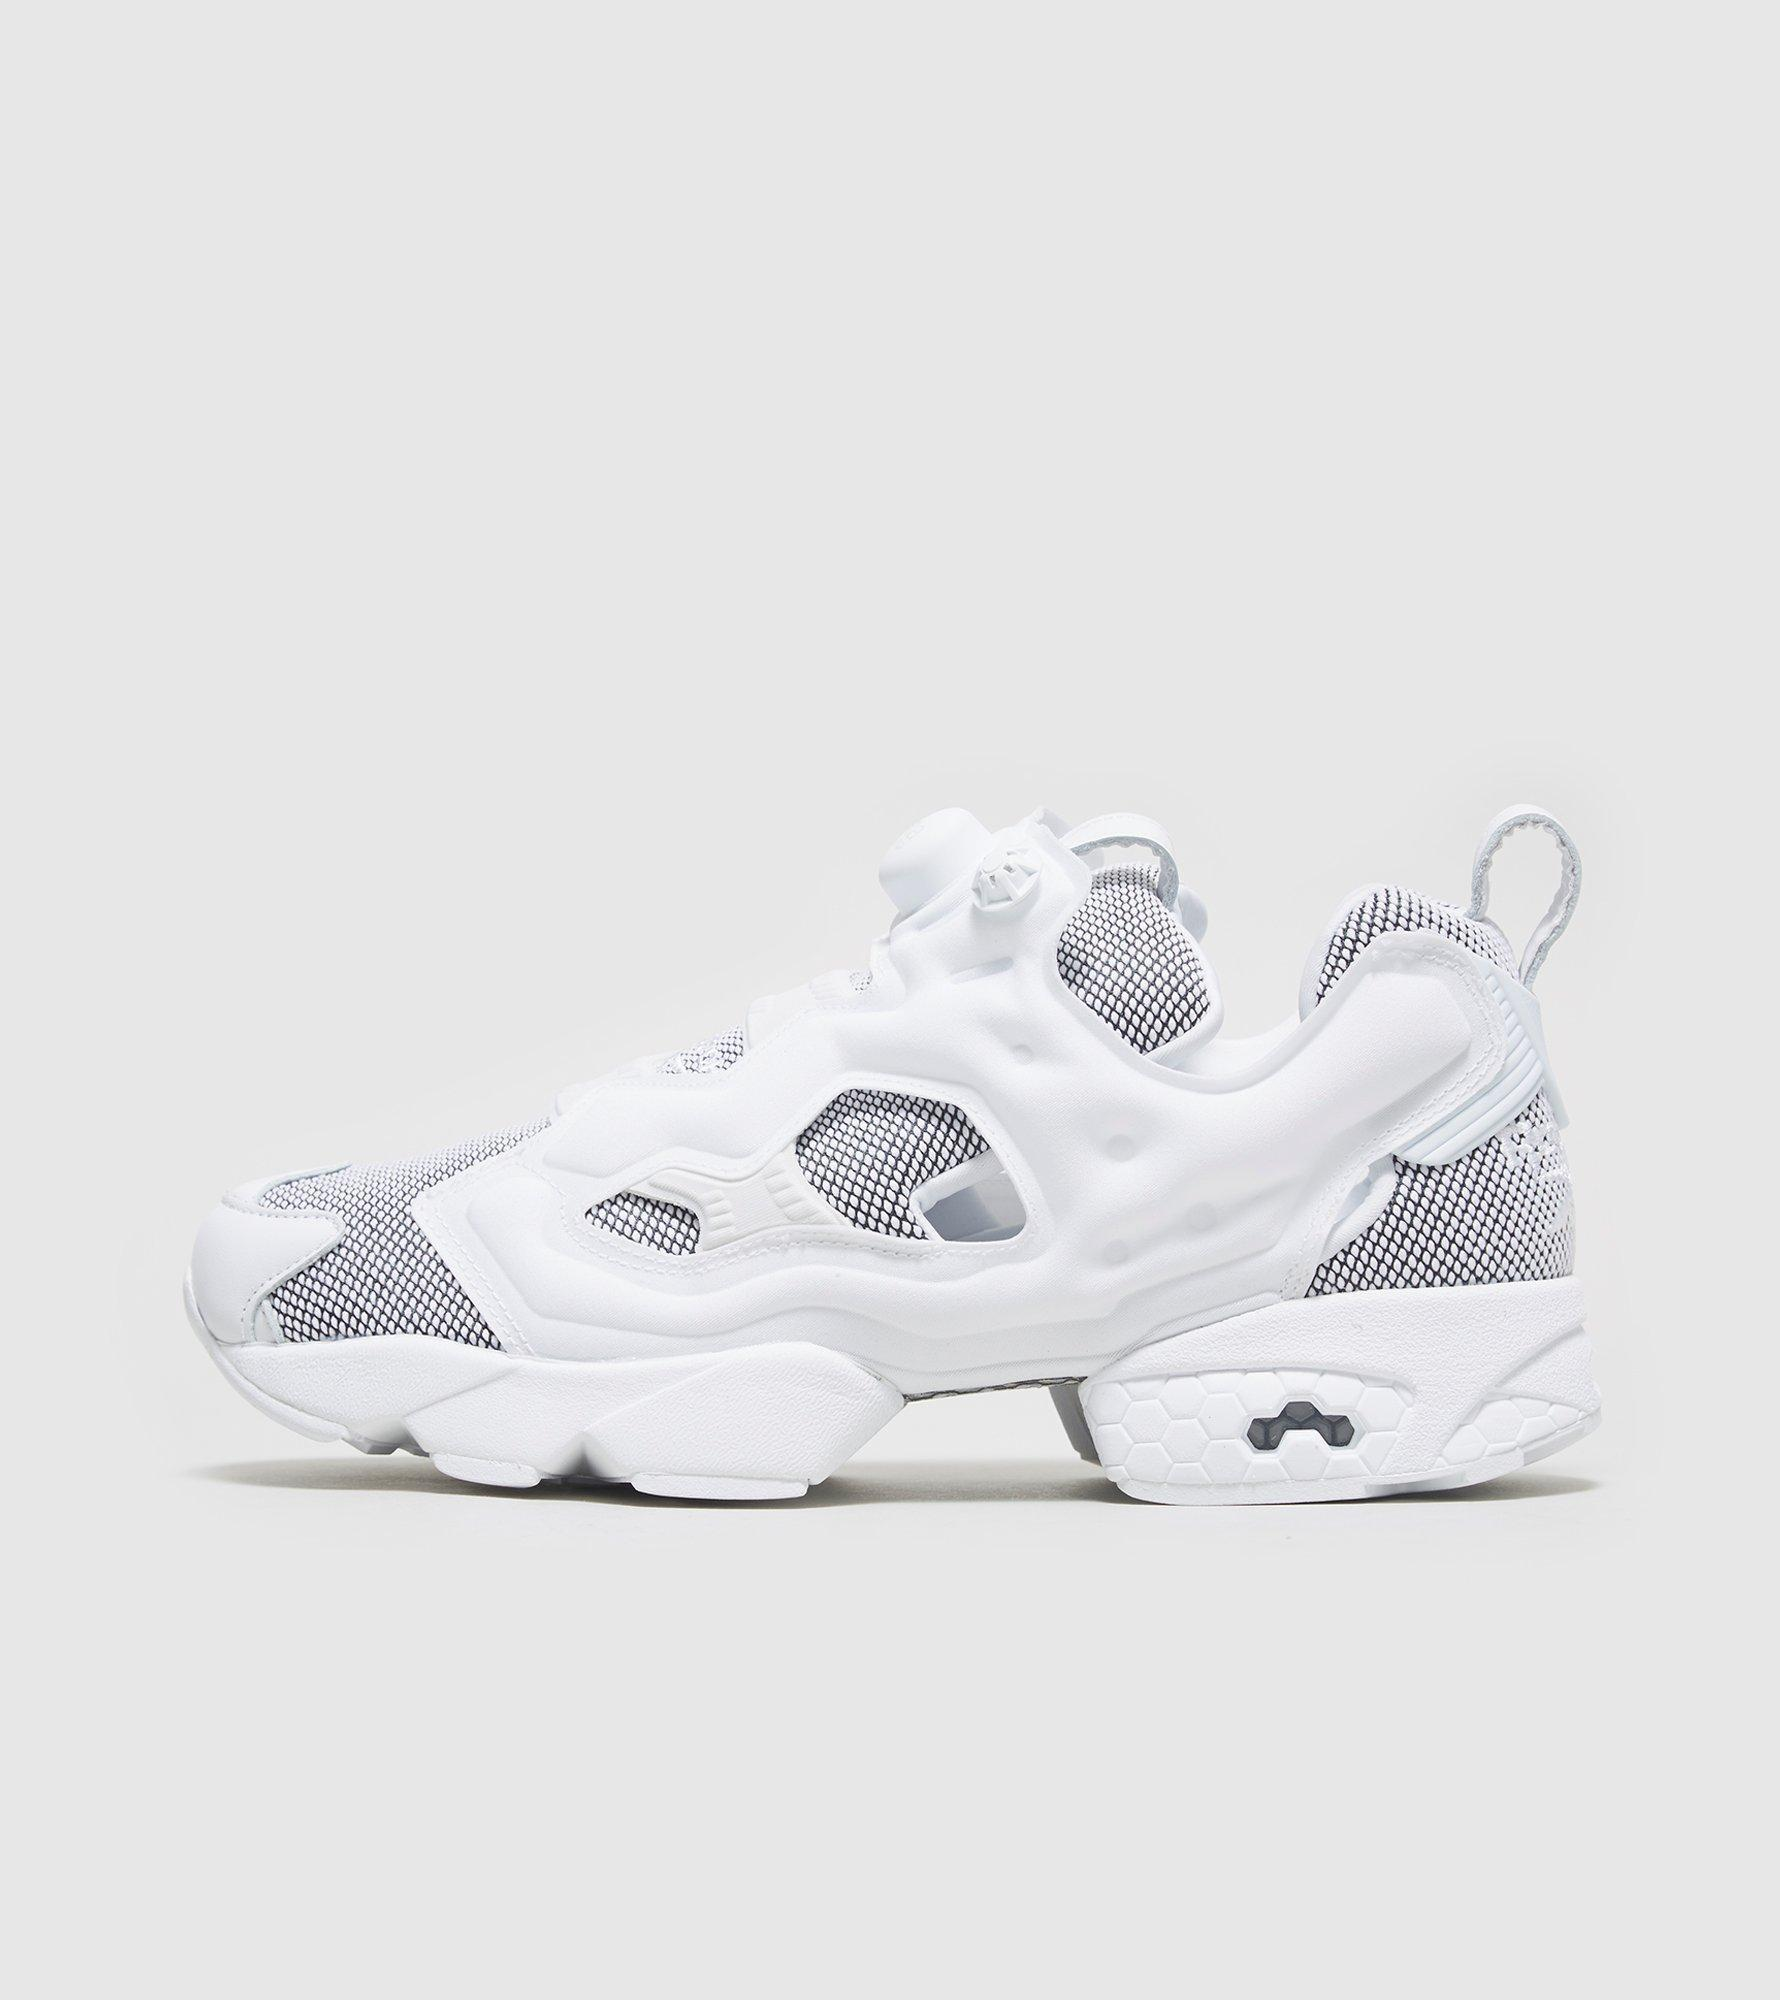 3658c13e1cc5 Lyst - Reebok Instapump Fury Woven - Size  Exclusive in White